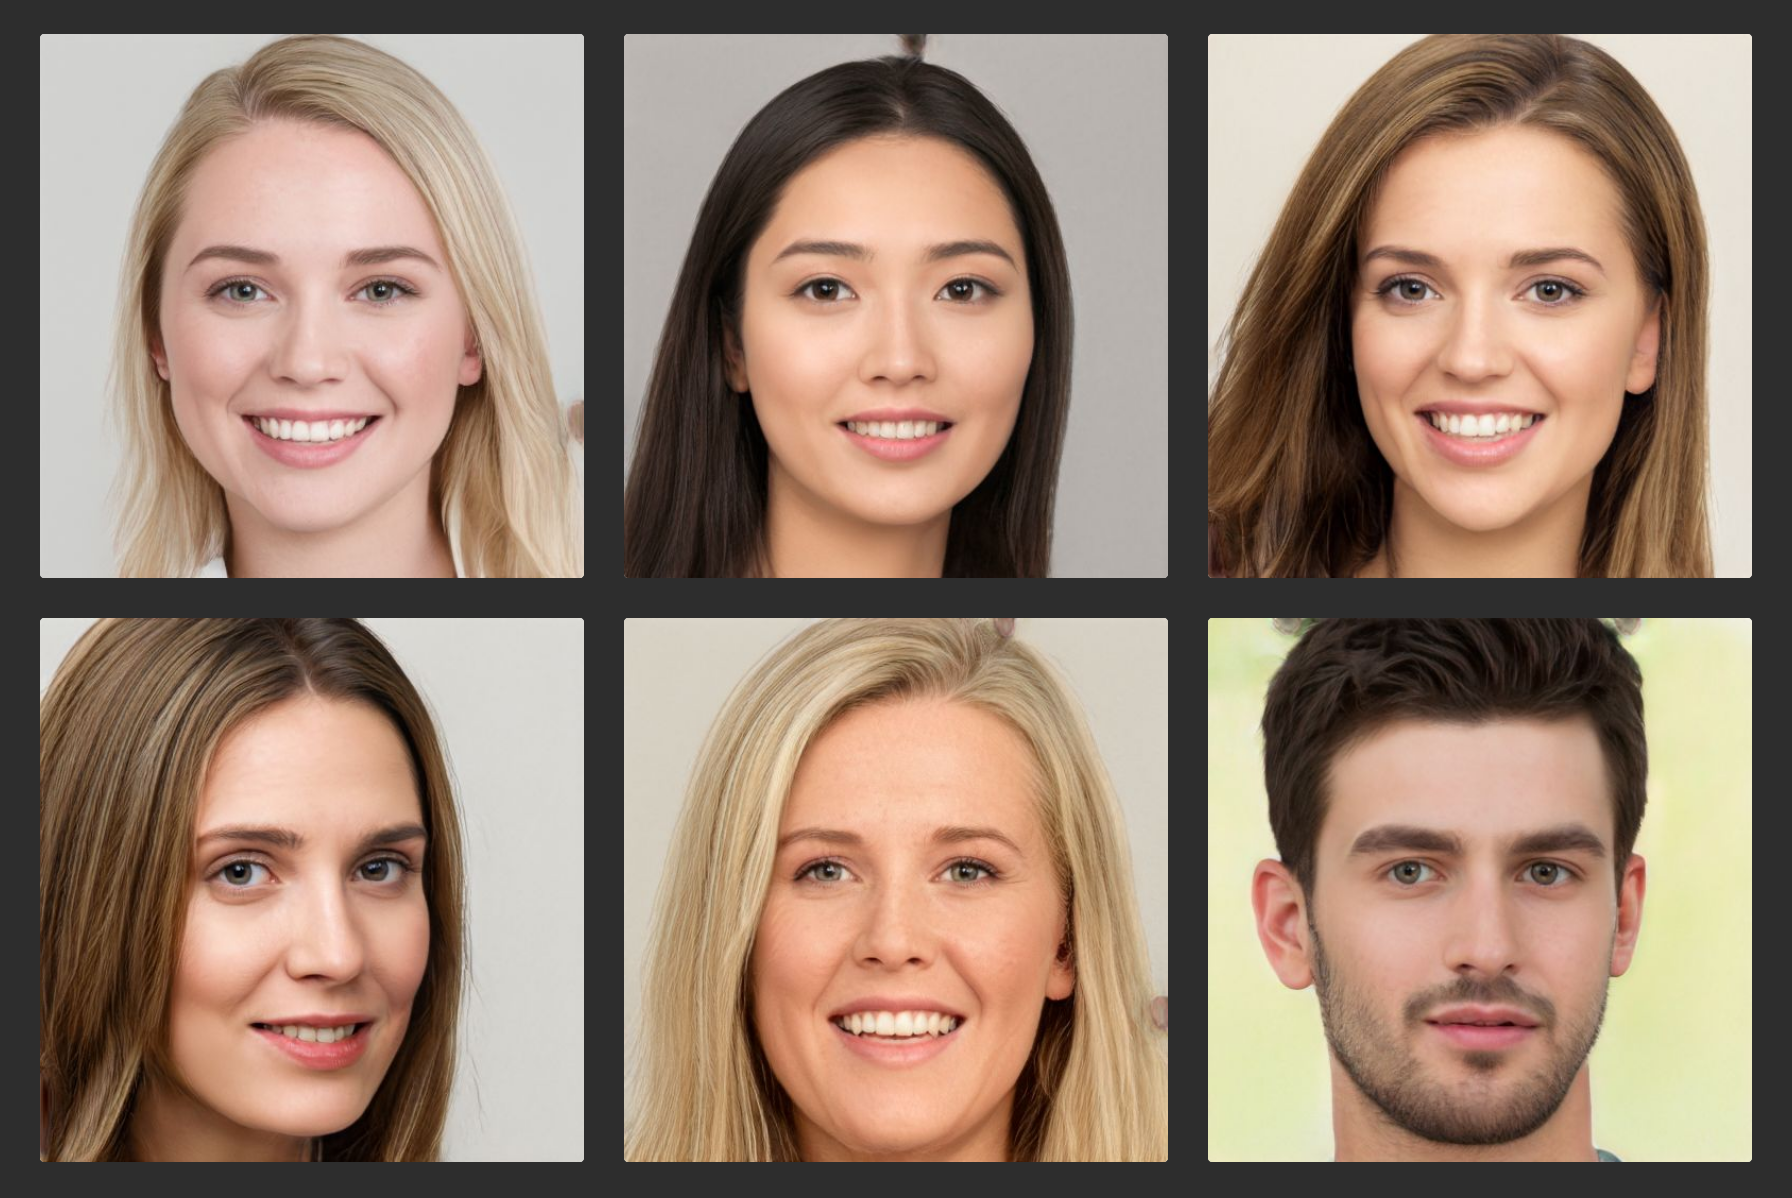 Photorealistic headshots of six people generated by a machine learning algorithm